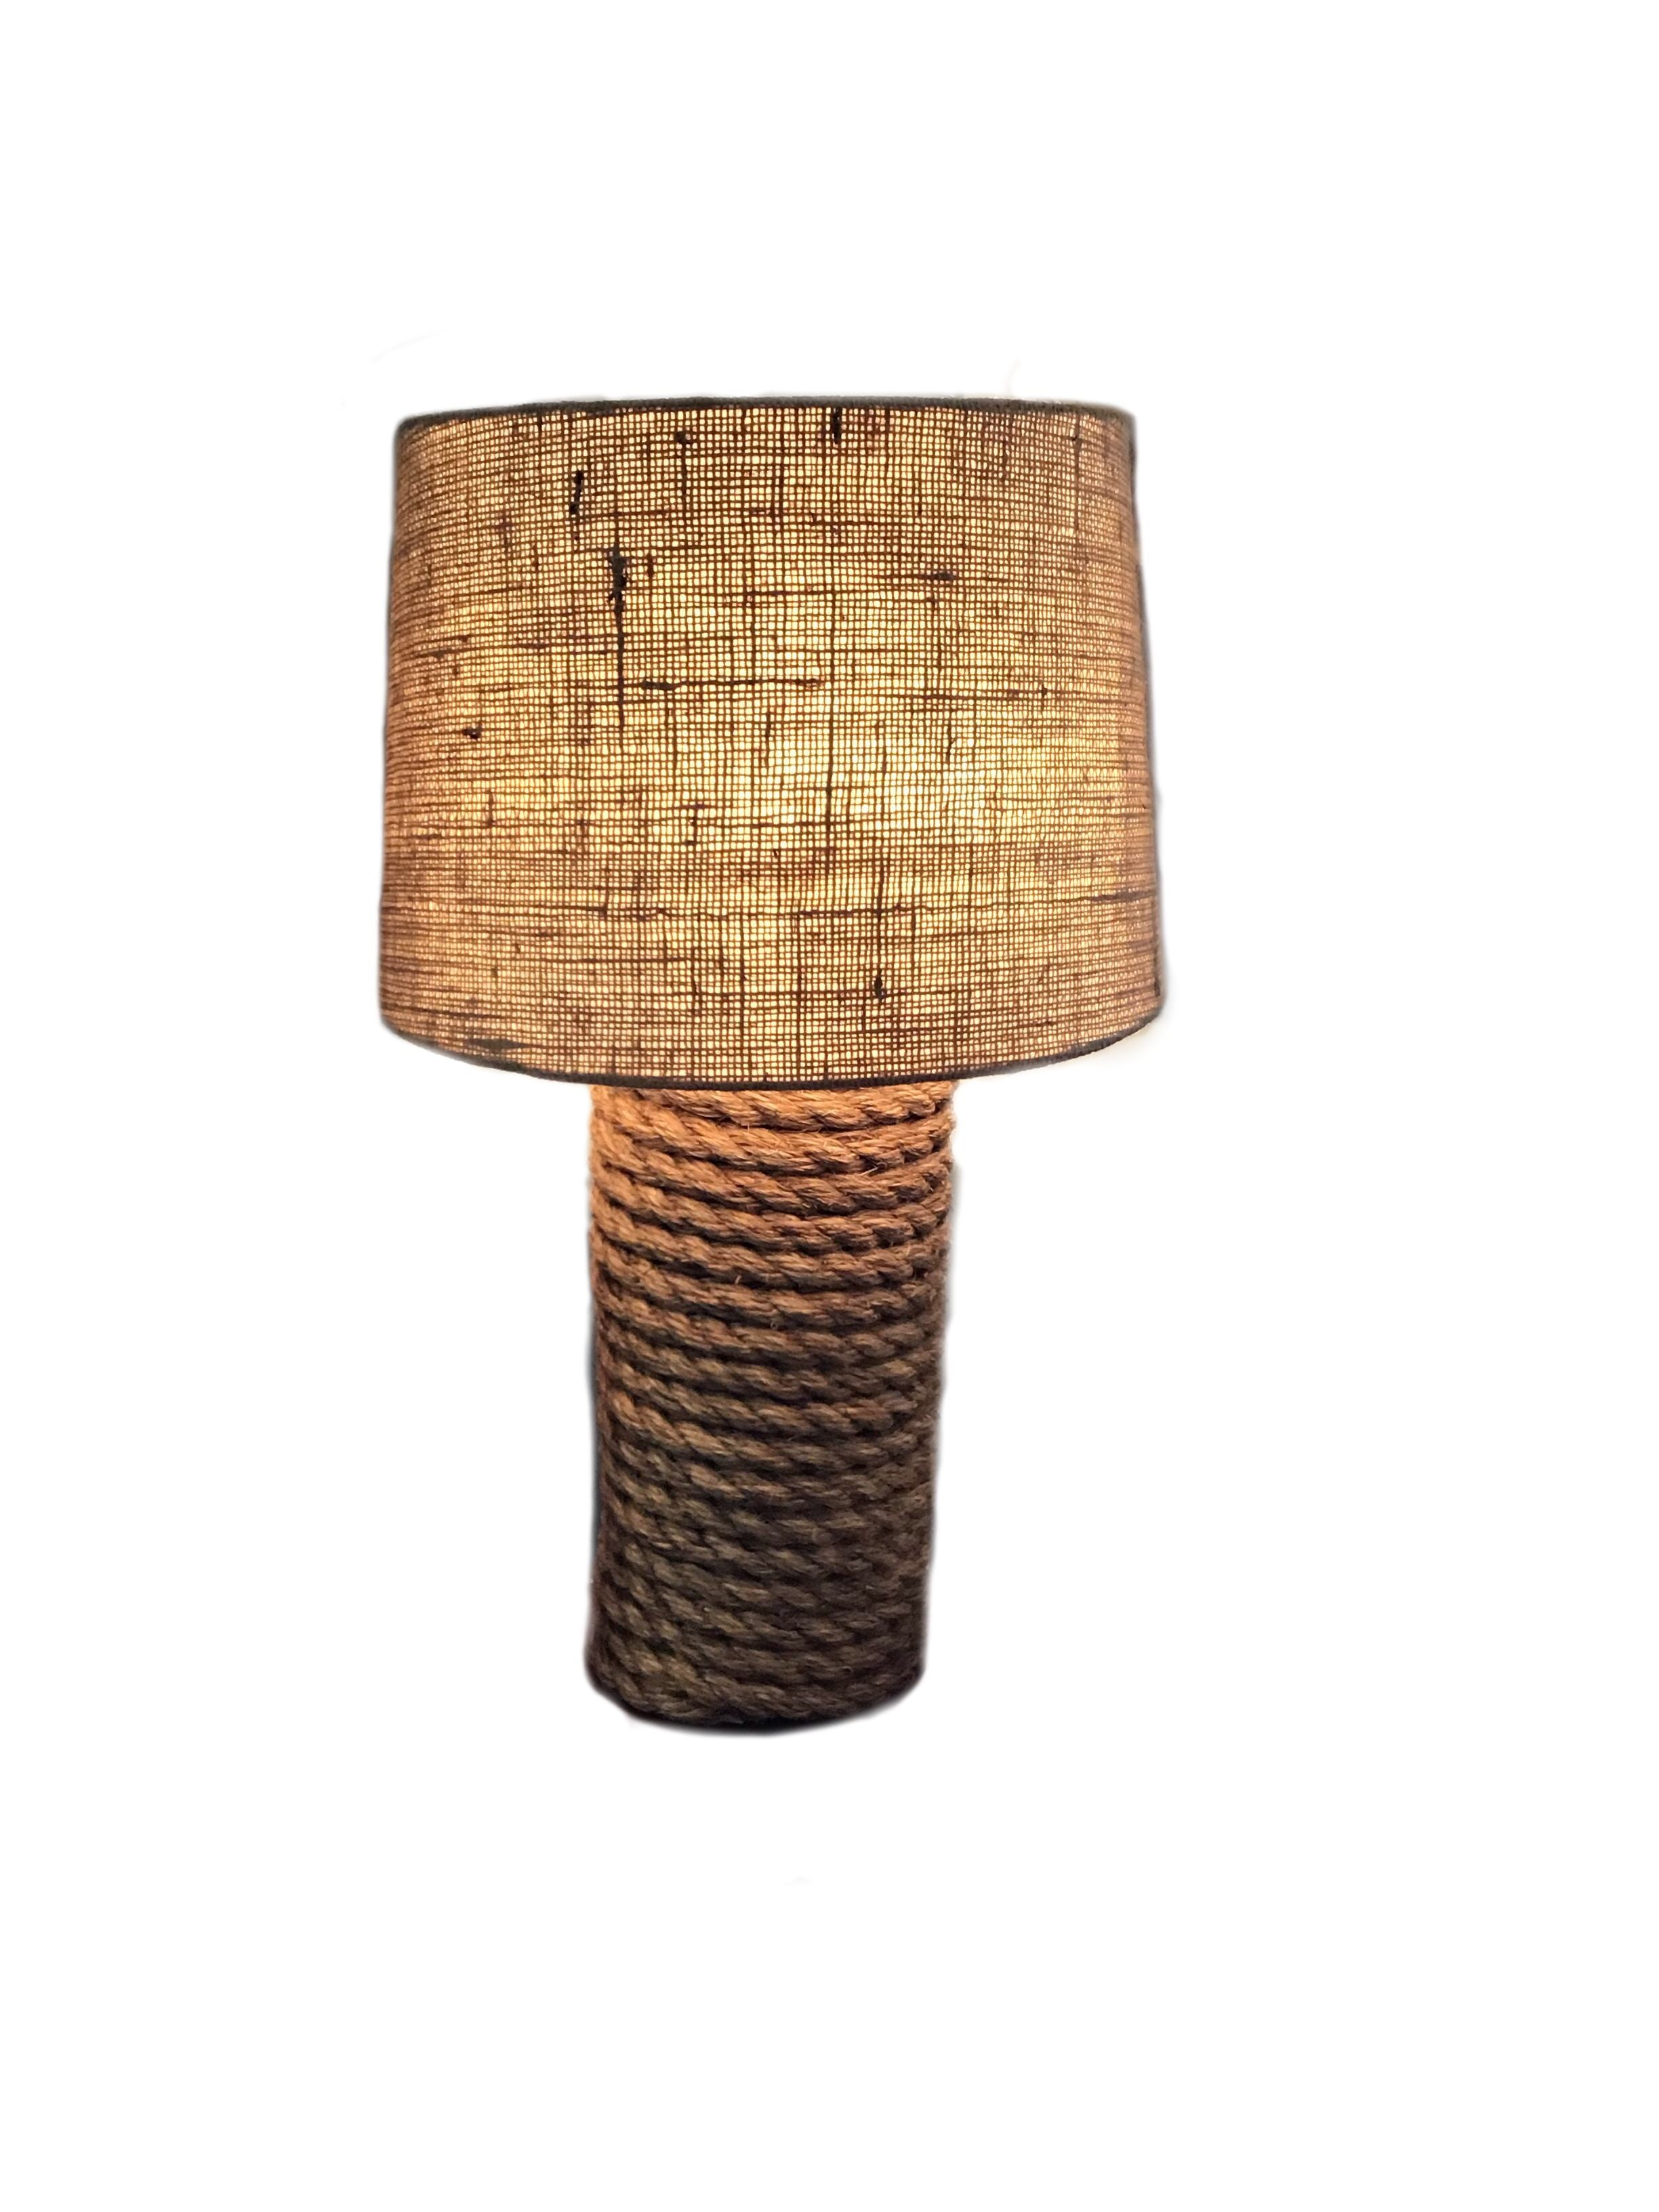 Rope Lamp with Burlap Shade